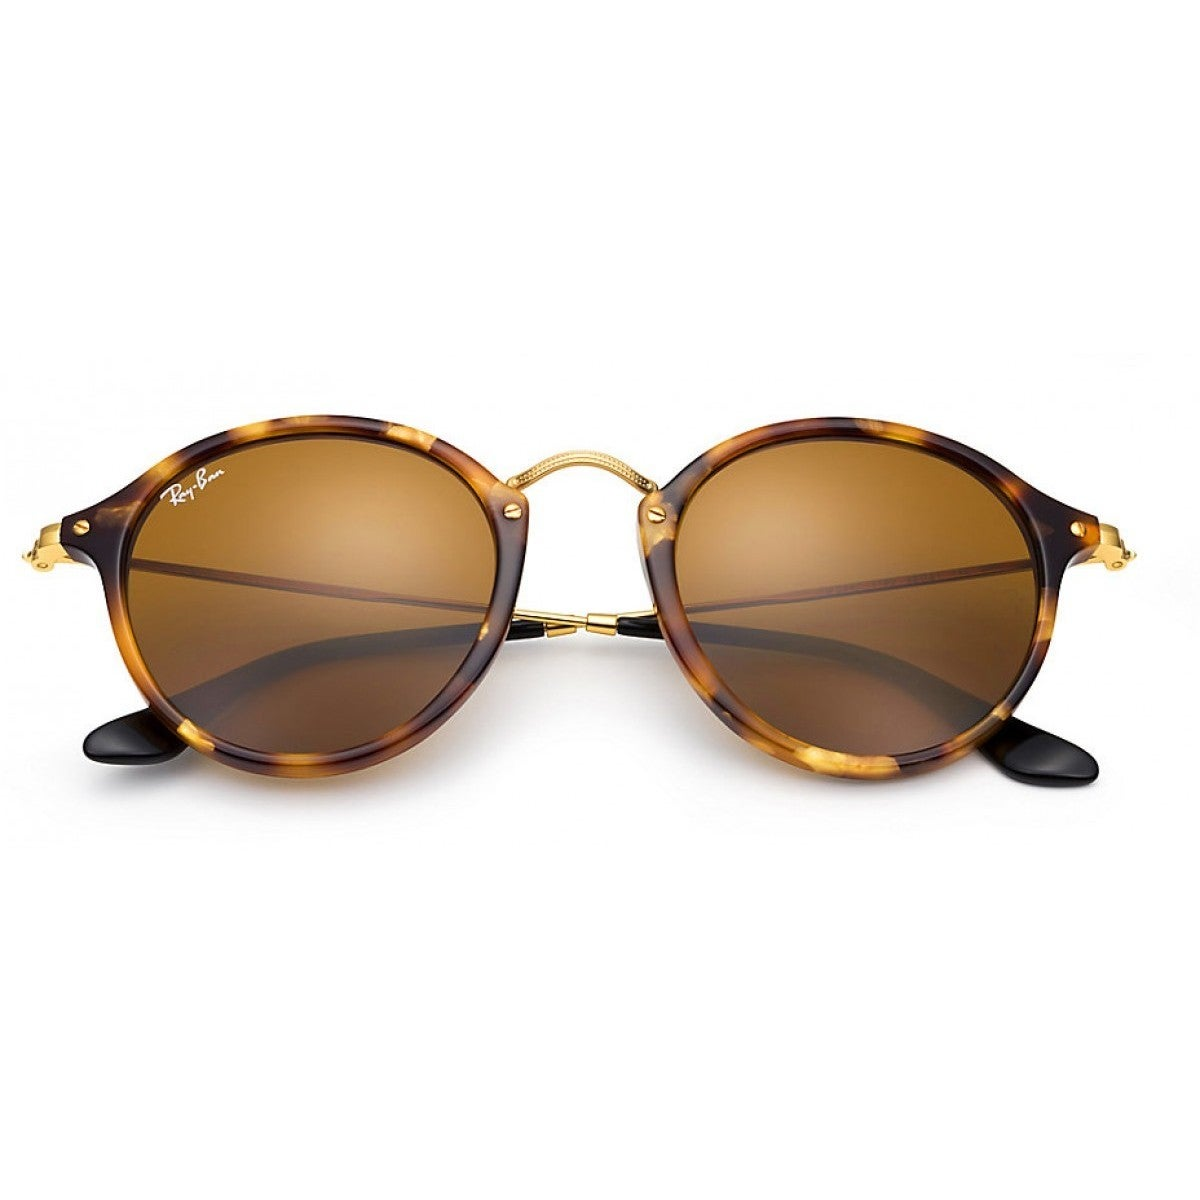 02993433aa Shop Ray-Ban RB2447 1160 Men s Round Fleck Tortoise Gold Frame Brown  Classic 49-millimeter Lens Sunglasses - Free Shipping Today - Overstock -  12392779